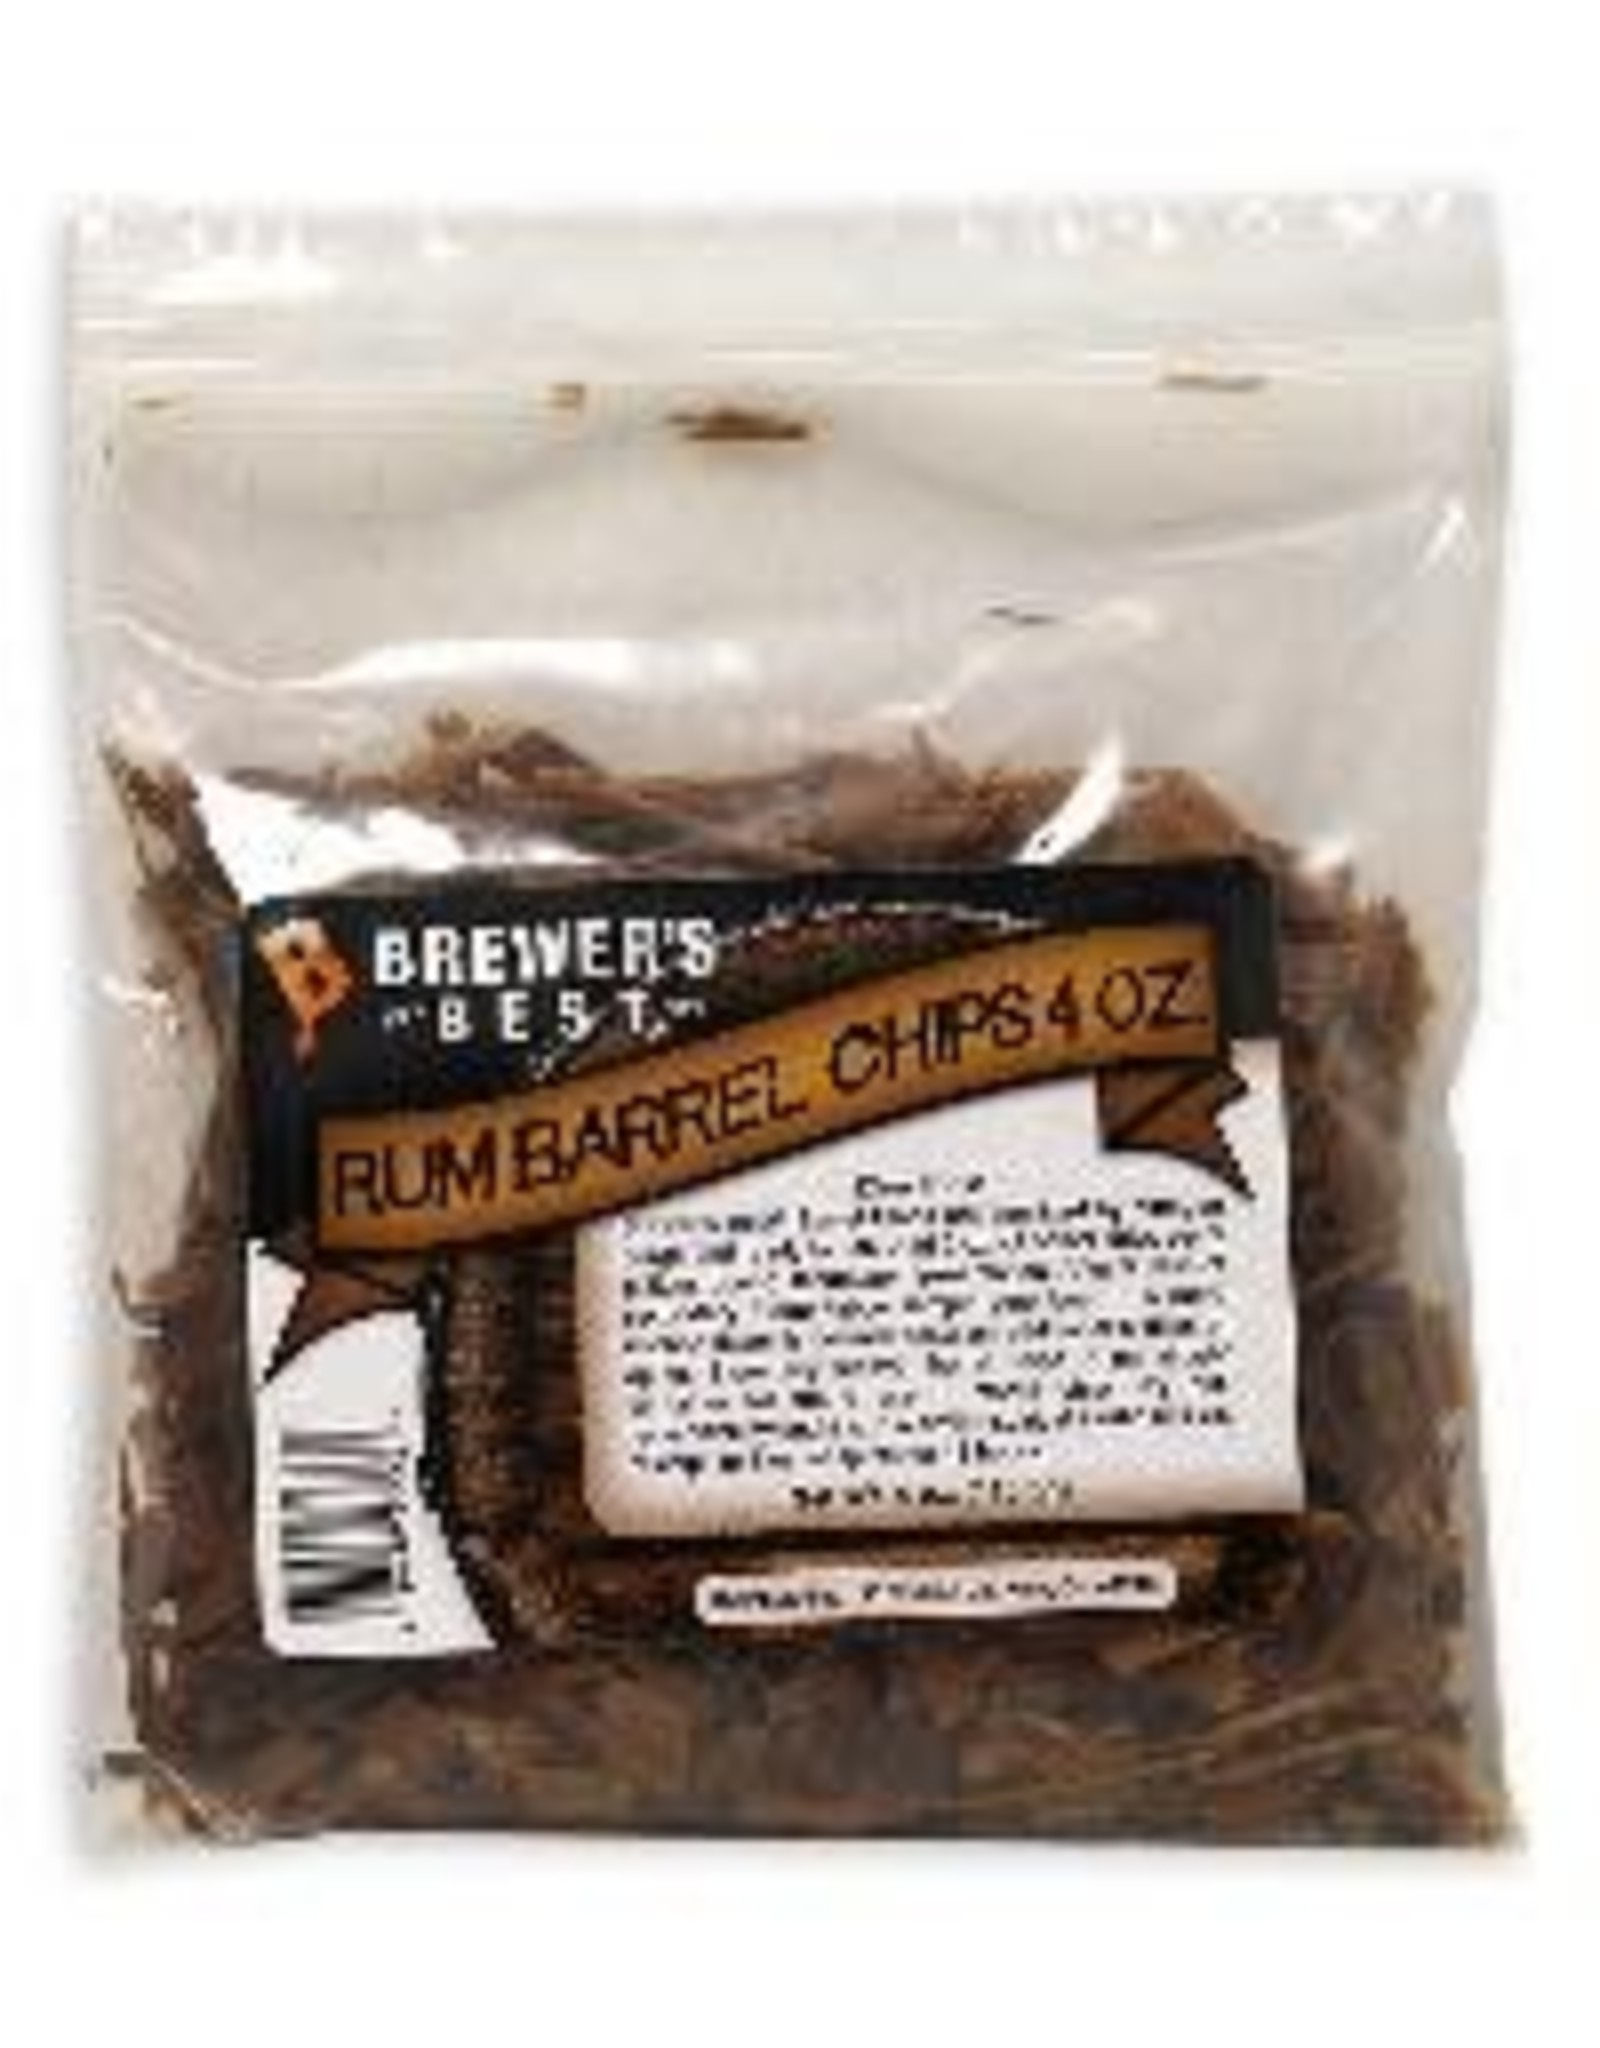 RUM BARREL CHIPS 4OZ